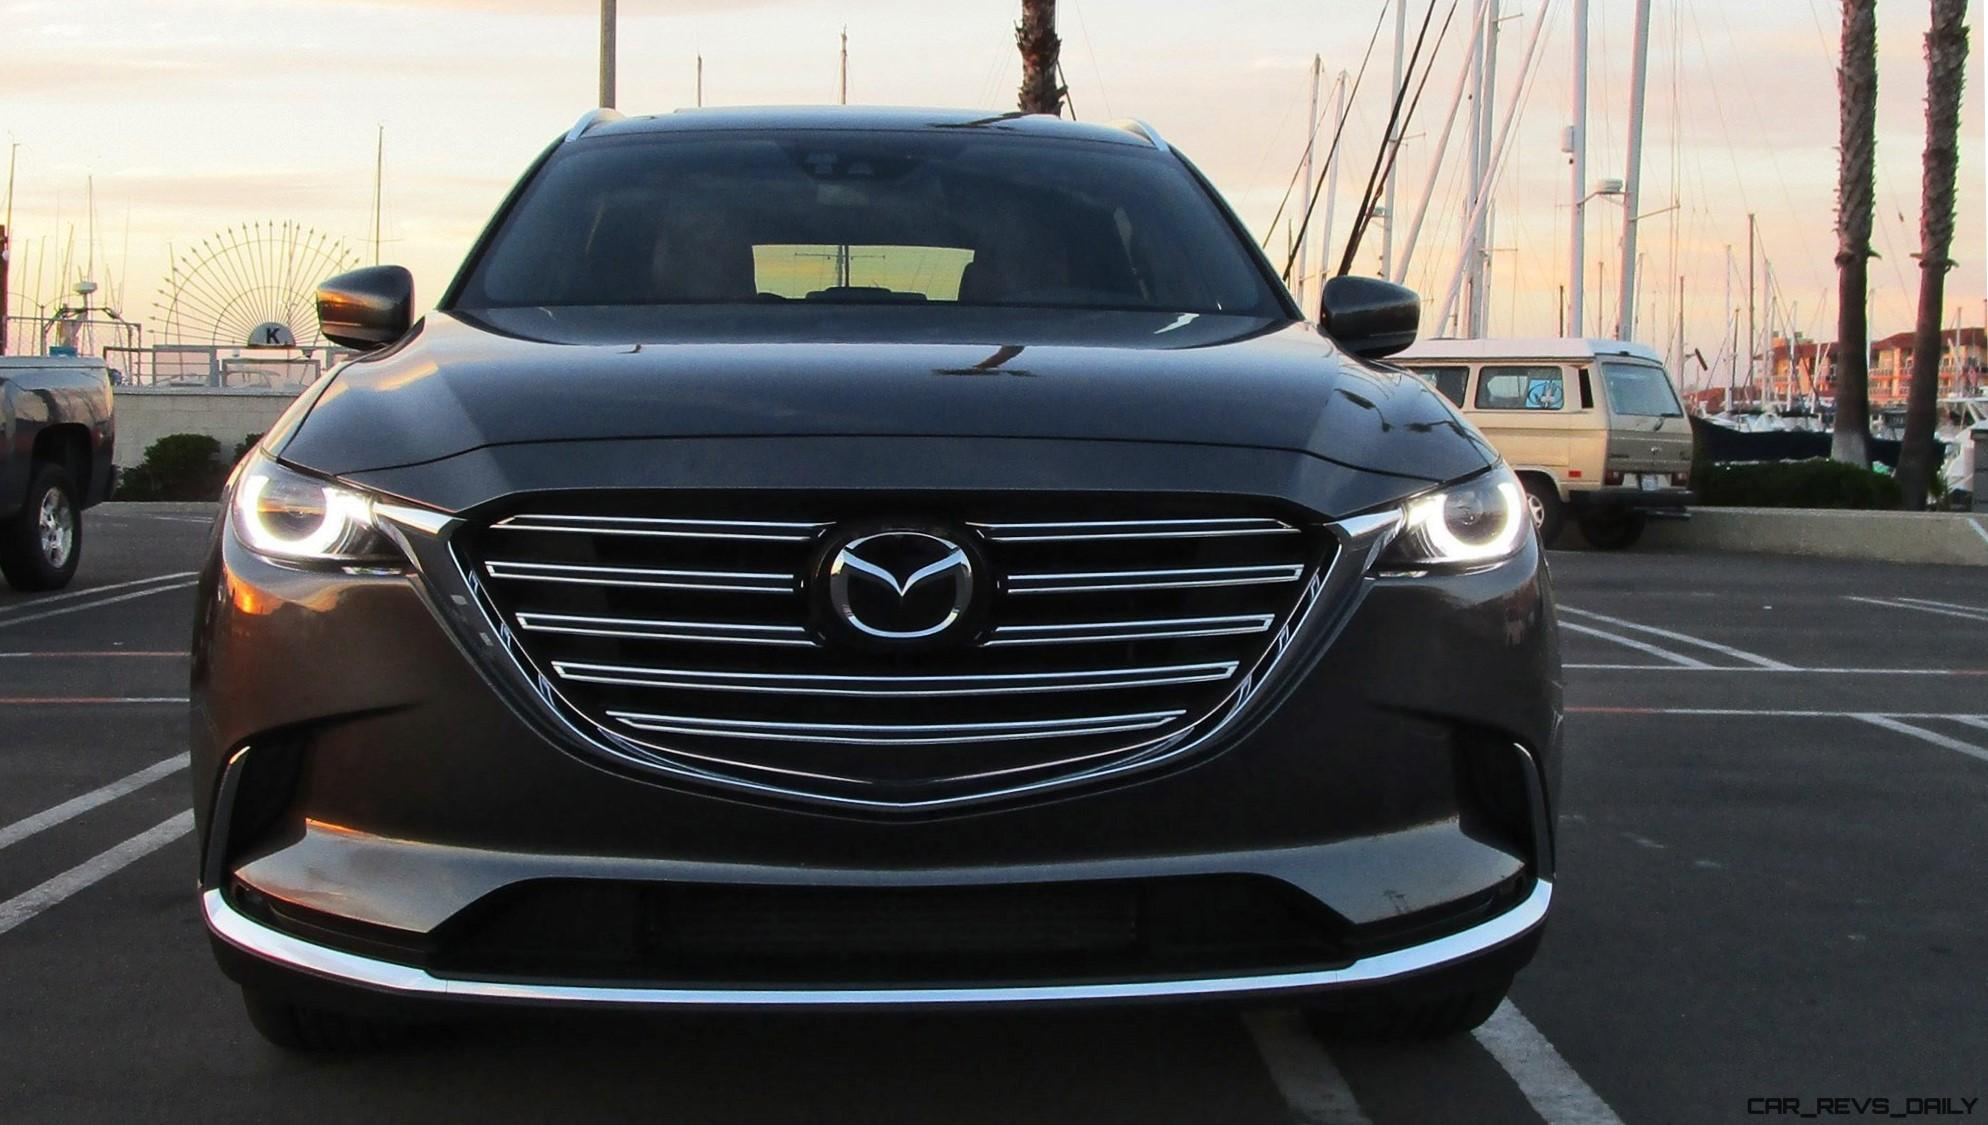 2016 mazda cx 9 signature road test review by ben lewis car shopping. Black Bedroom Furniture Sets. Home Design Ideas